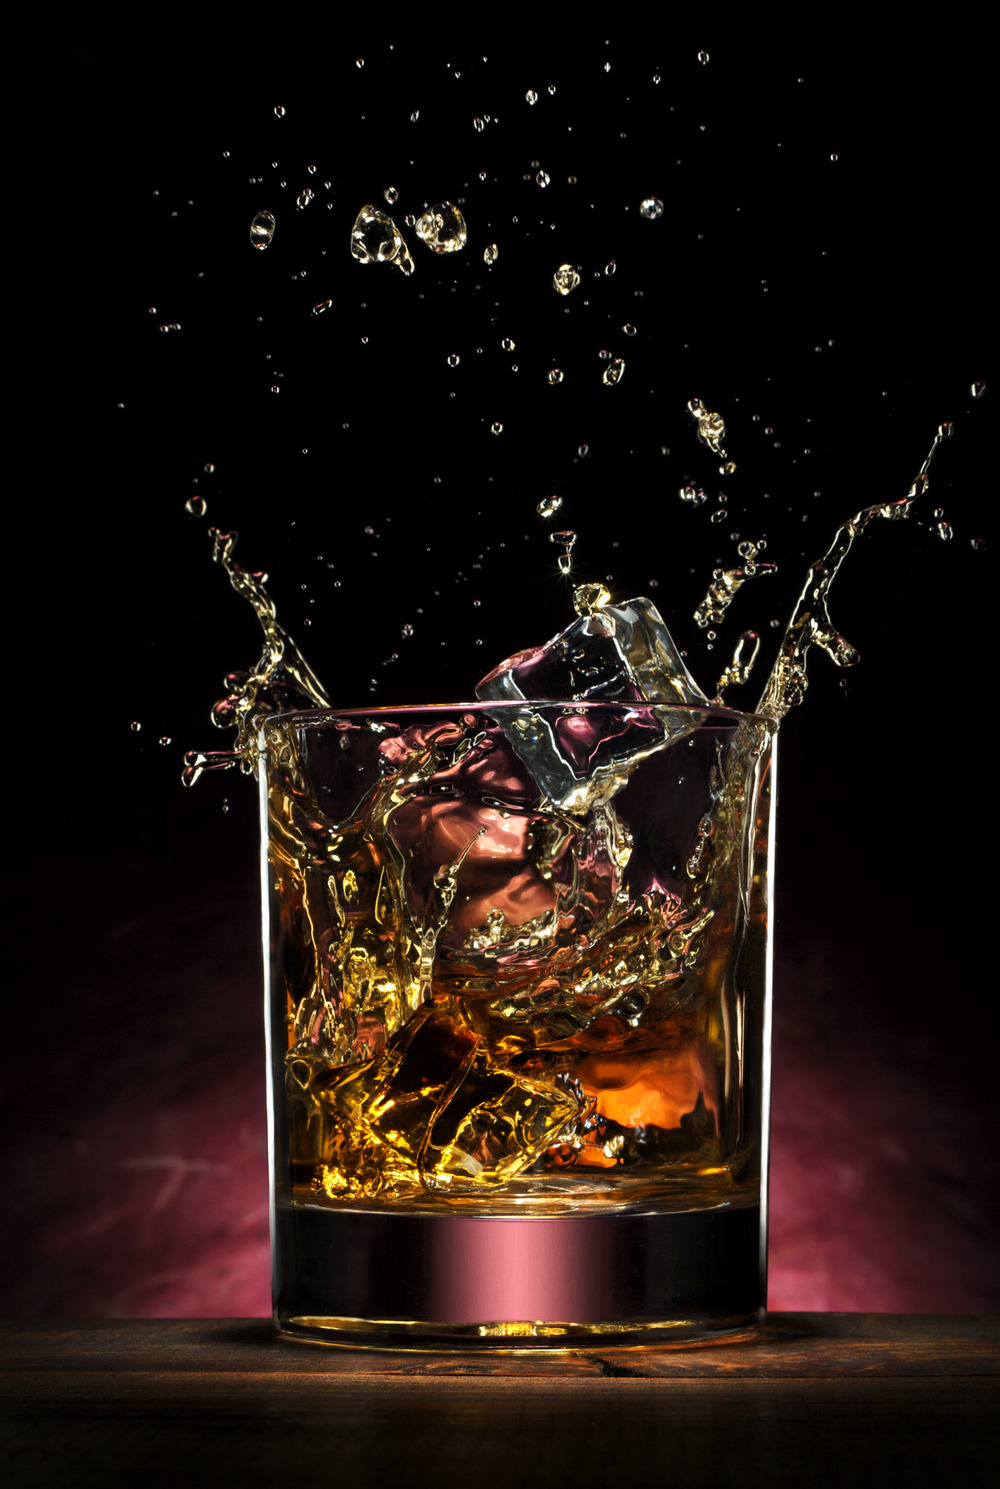 Fielder Williams Strain fiwist Nashville Product Photographer whiskey jack danials splash.jpg